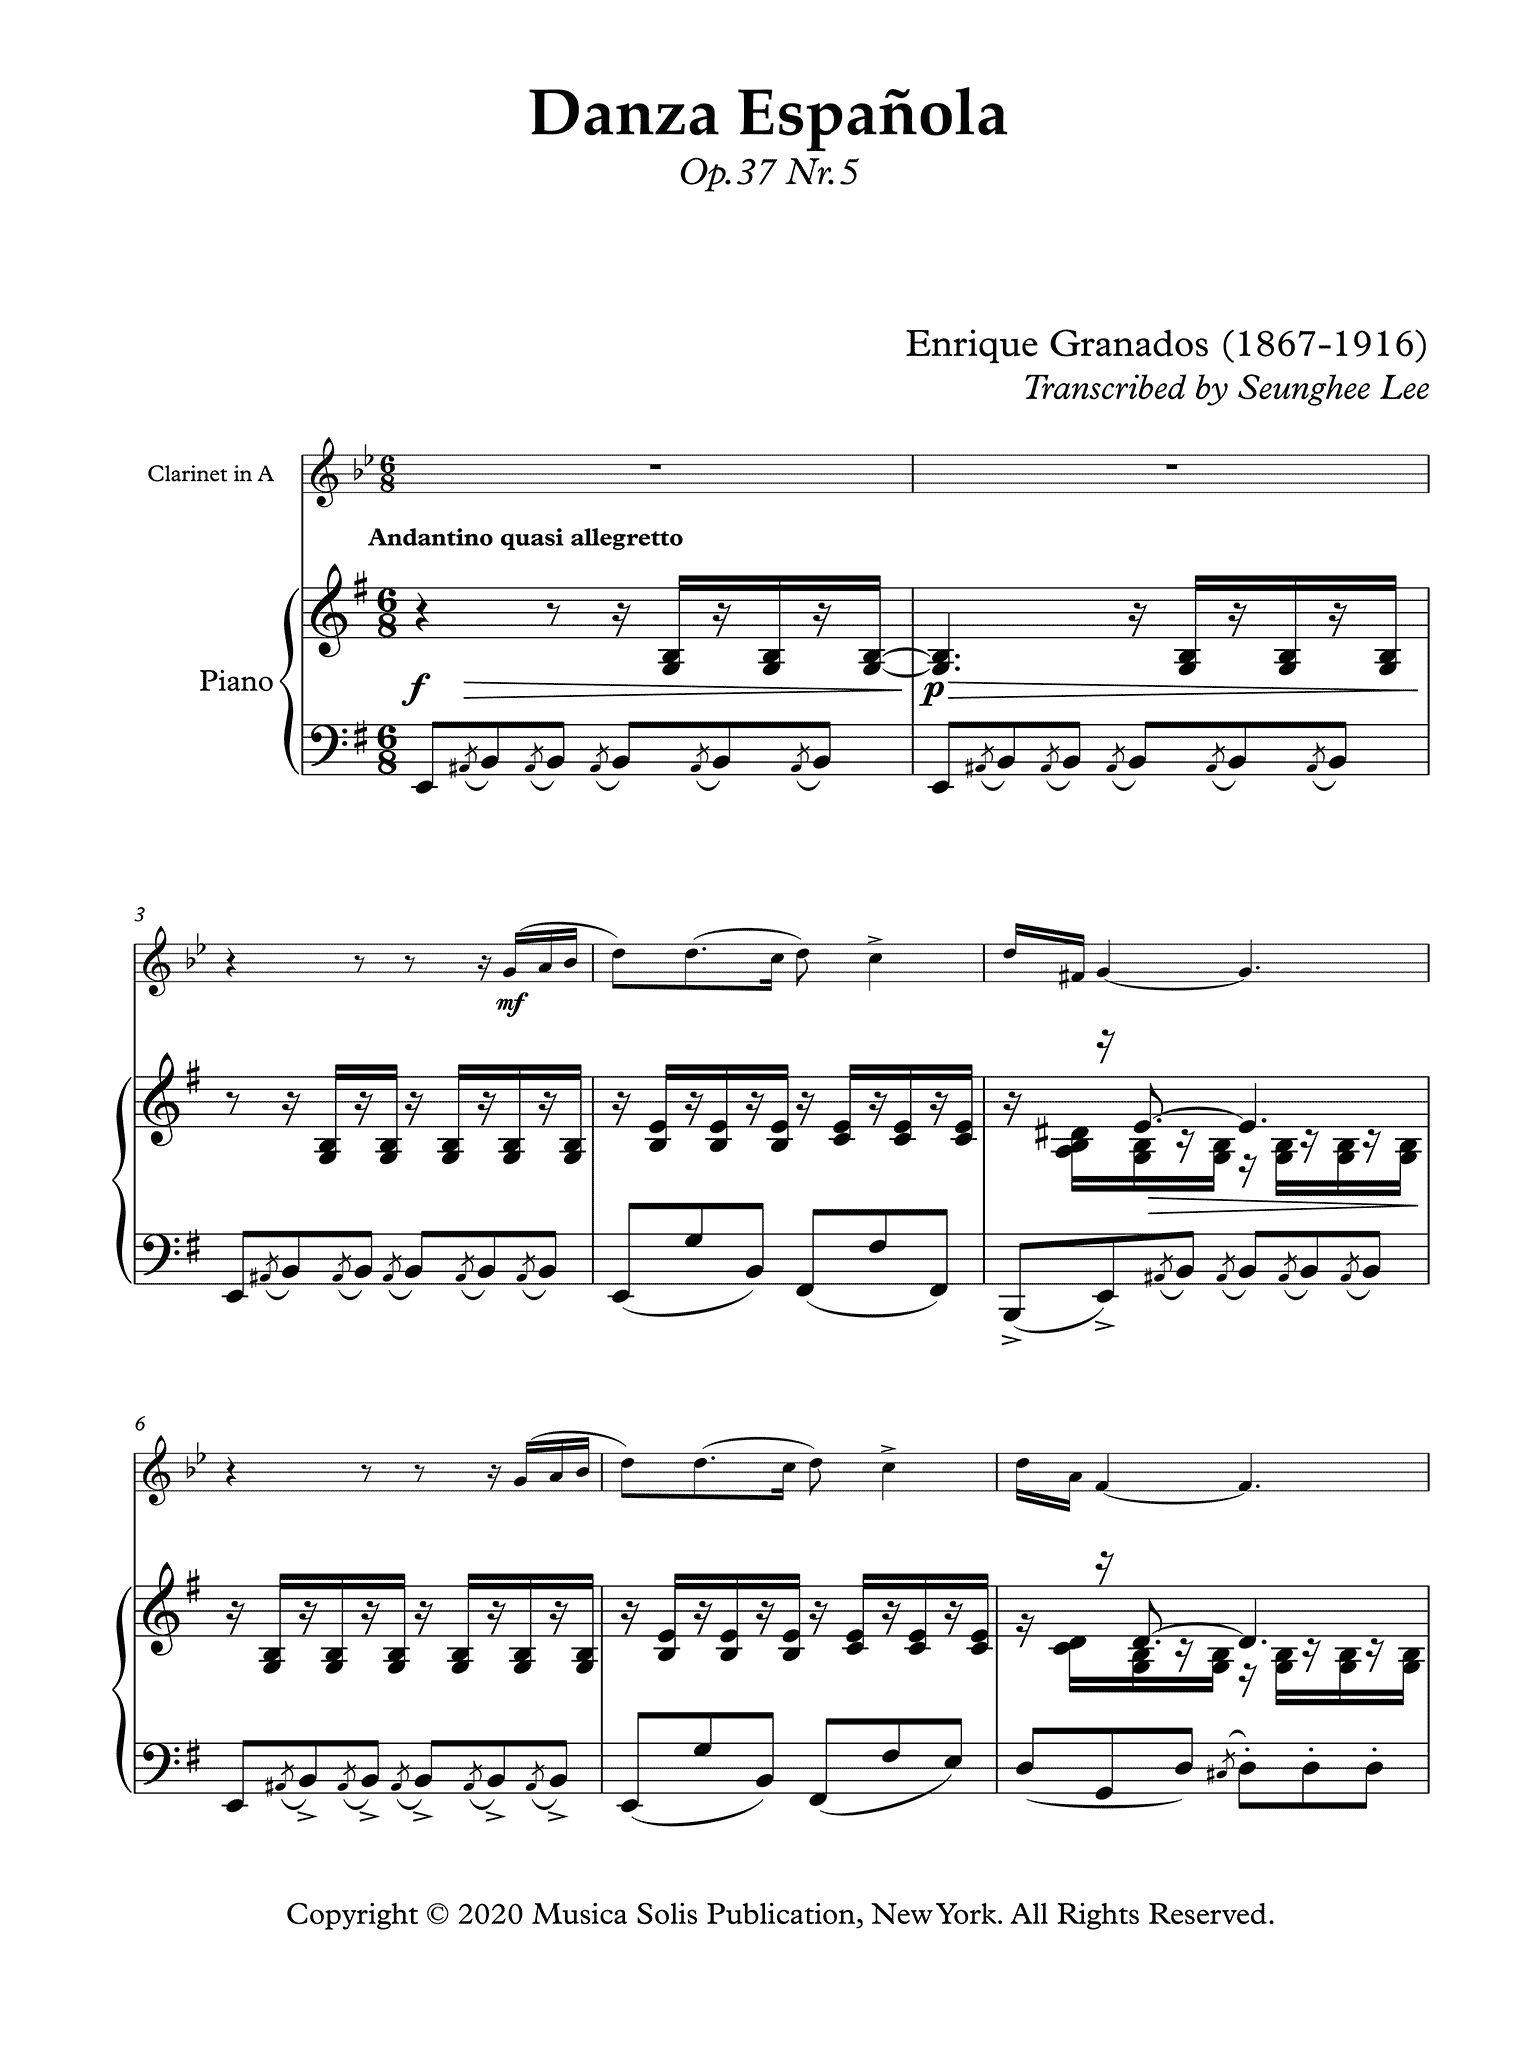 Granados Danza Espanola No. 5 clarinet & piano arrangement